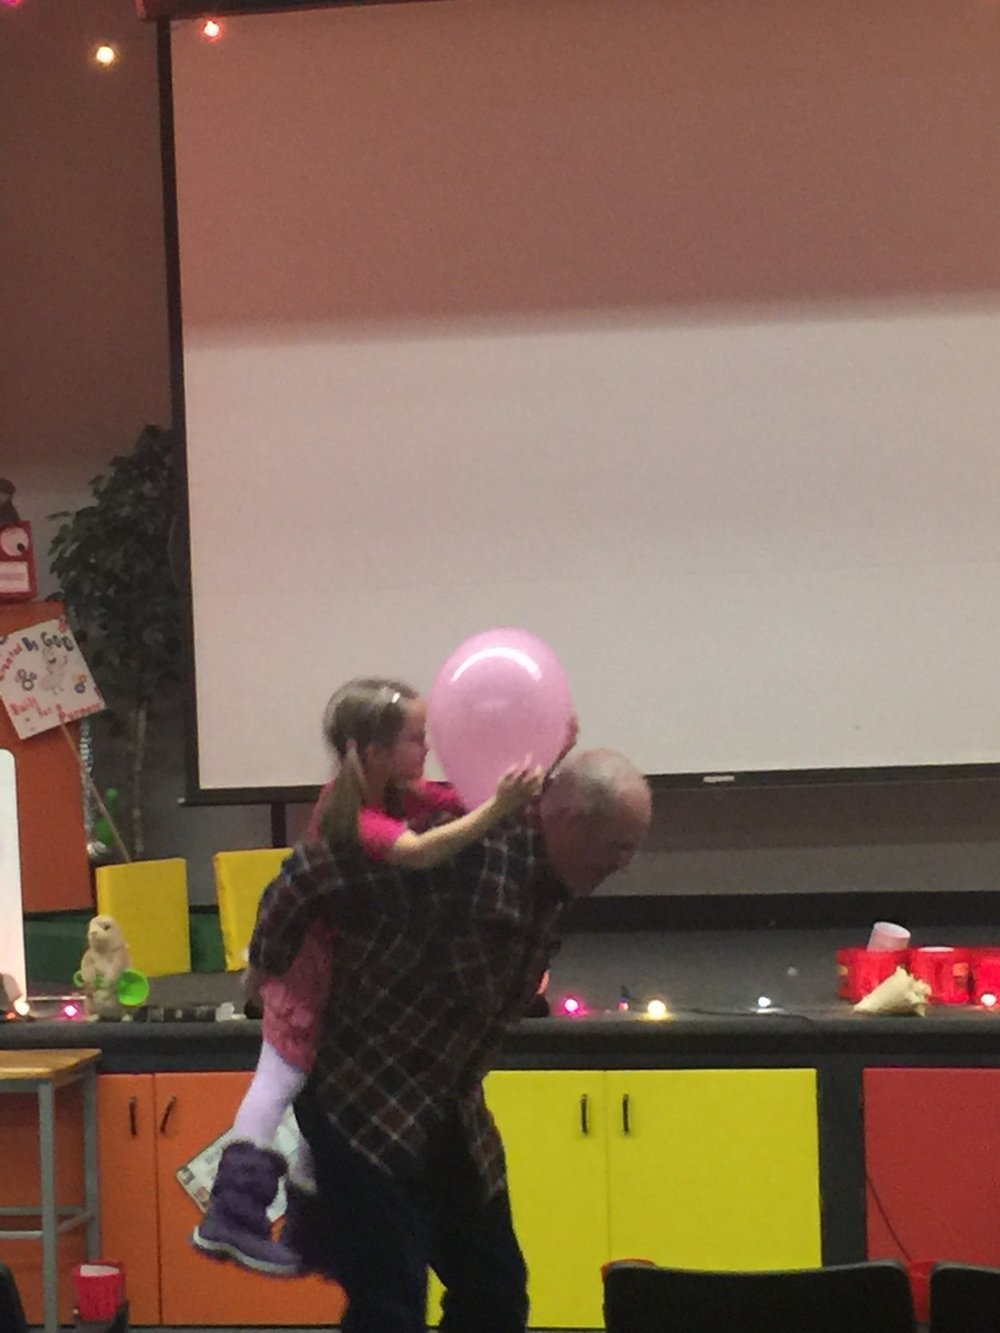 Grandpa got creative when they had to carry the balloon by their heads.